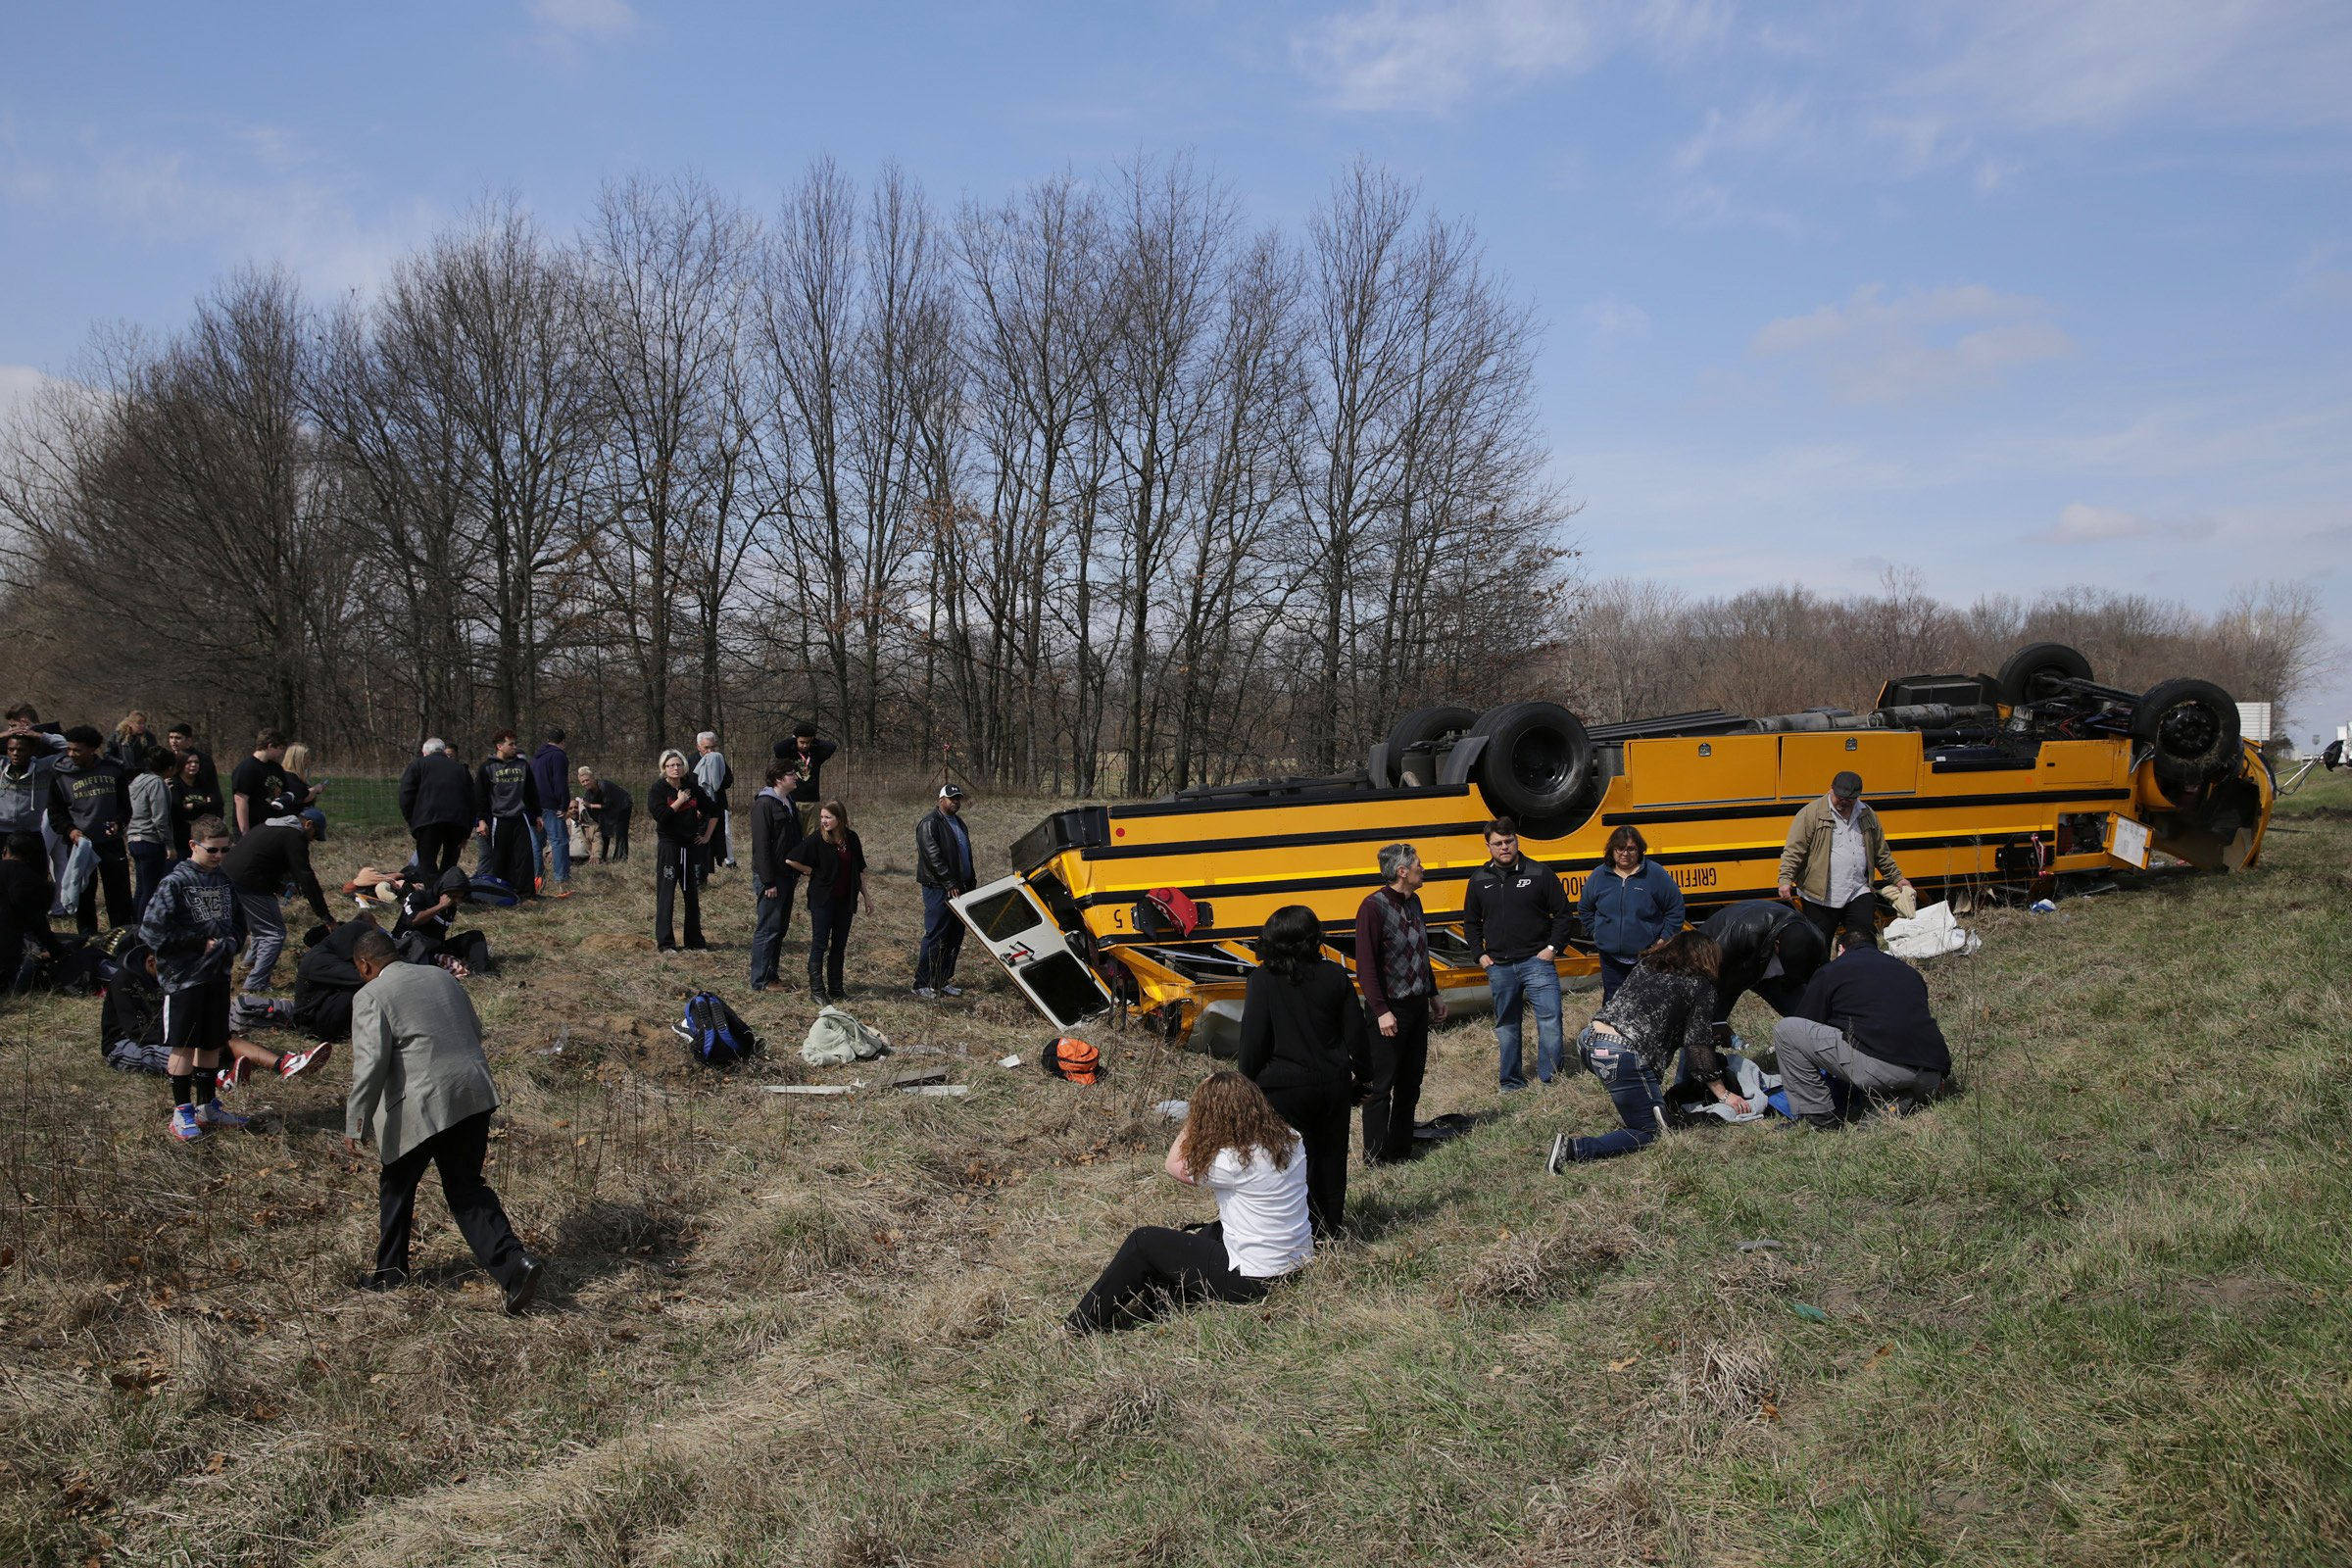 People on the scene of a school bus accident attend to the injured after the bus carrying Griffith High boys basketball team overturned in Demotte, Ind., Saturday, March 19, 2016. The bus rolled over on Interstate 65 on the way to Saturday's semifinal game against Marion at Lafayette Jefferson.